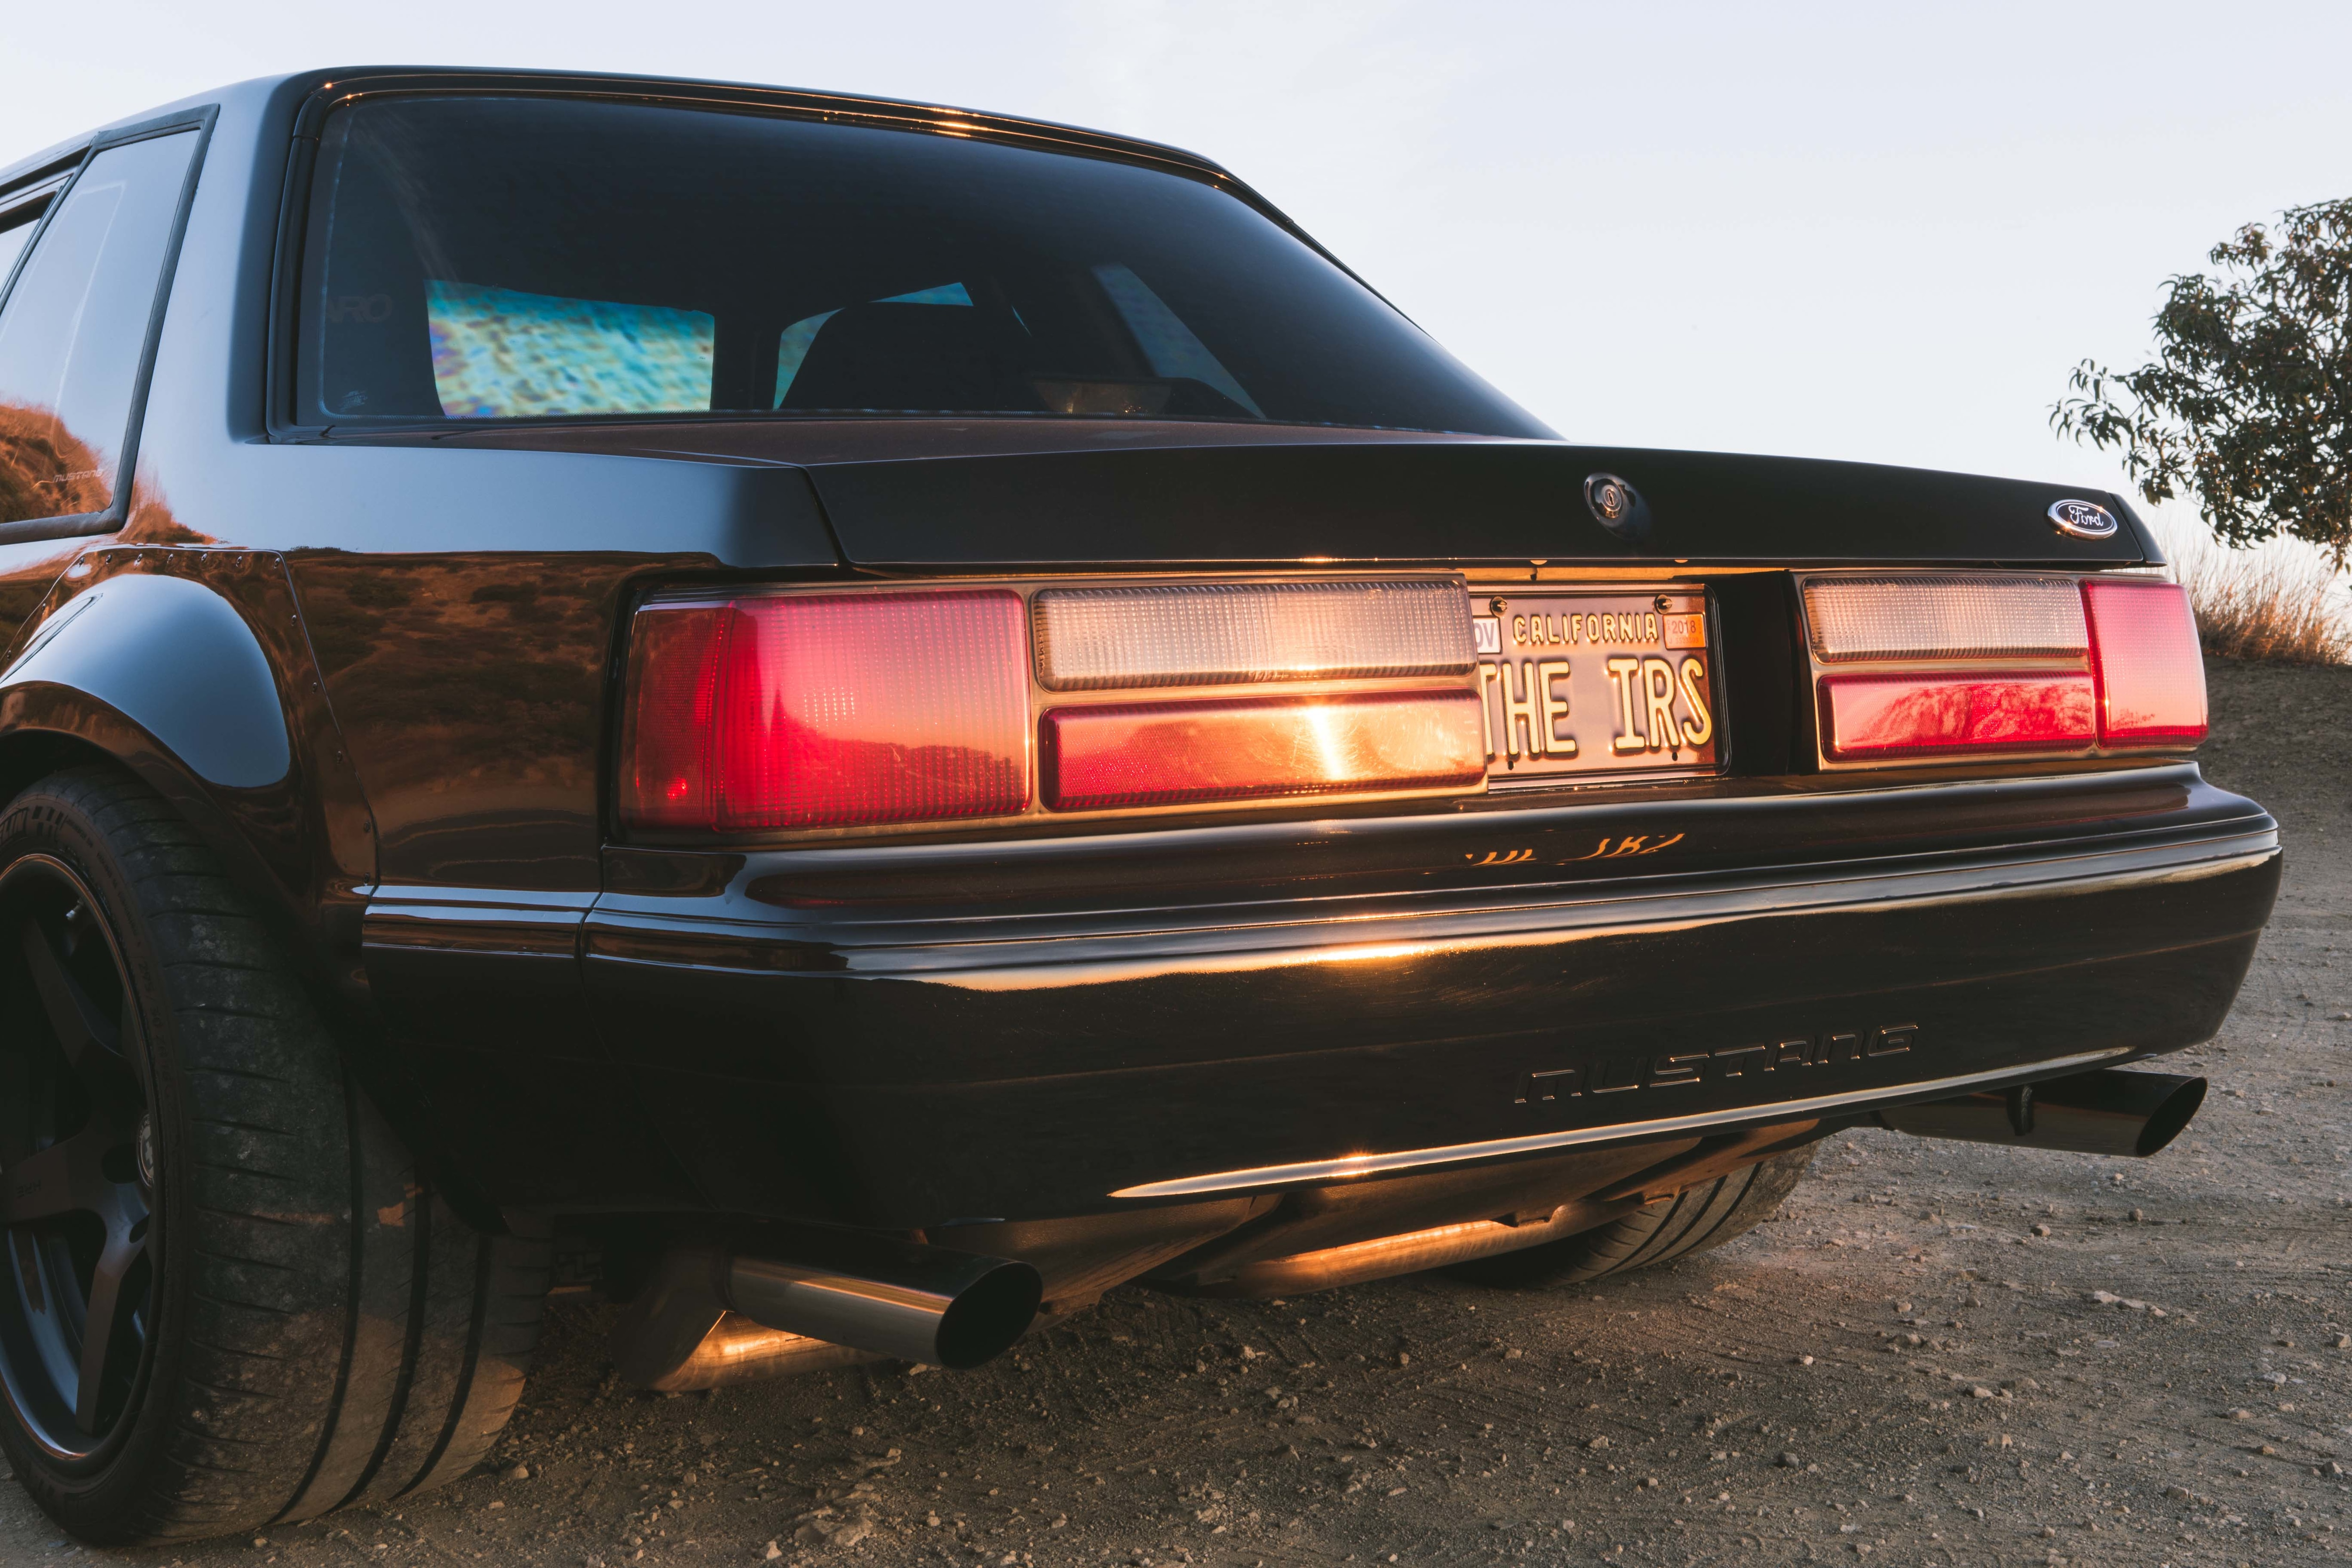 1988 Ford Mustang Rear End